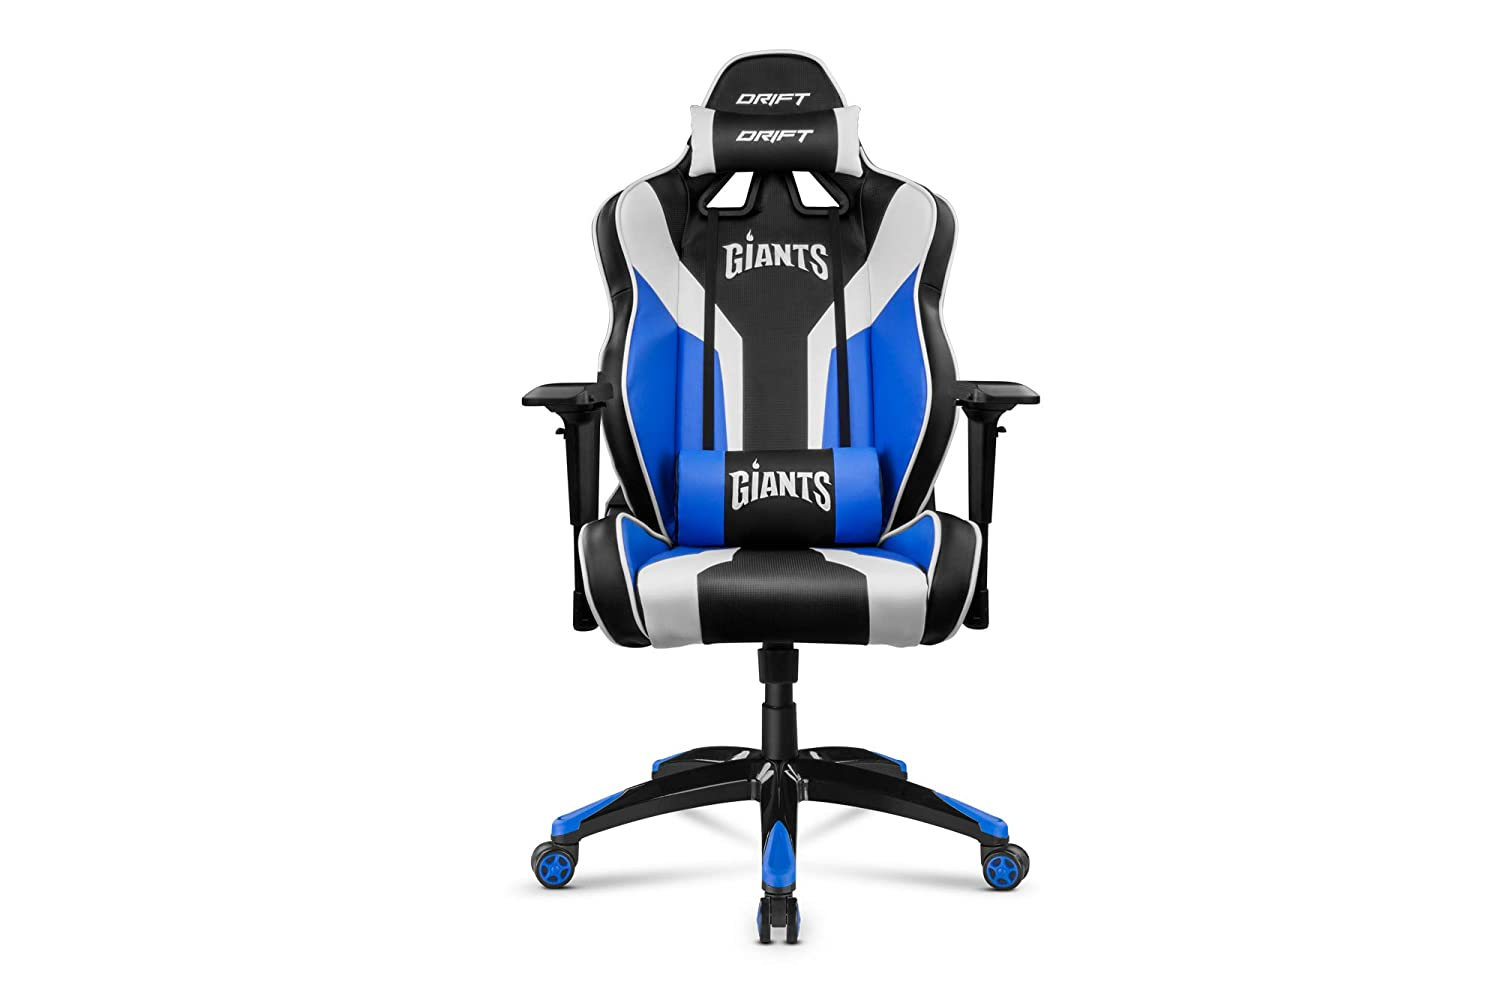 Drift DRGIANTS - Silla gaming, color negro, azul y blanco: Amazon.es: Informática